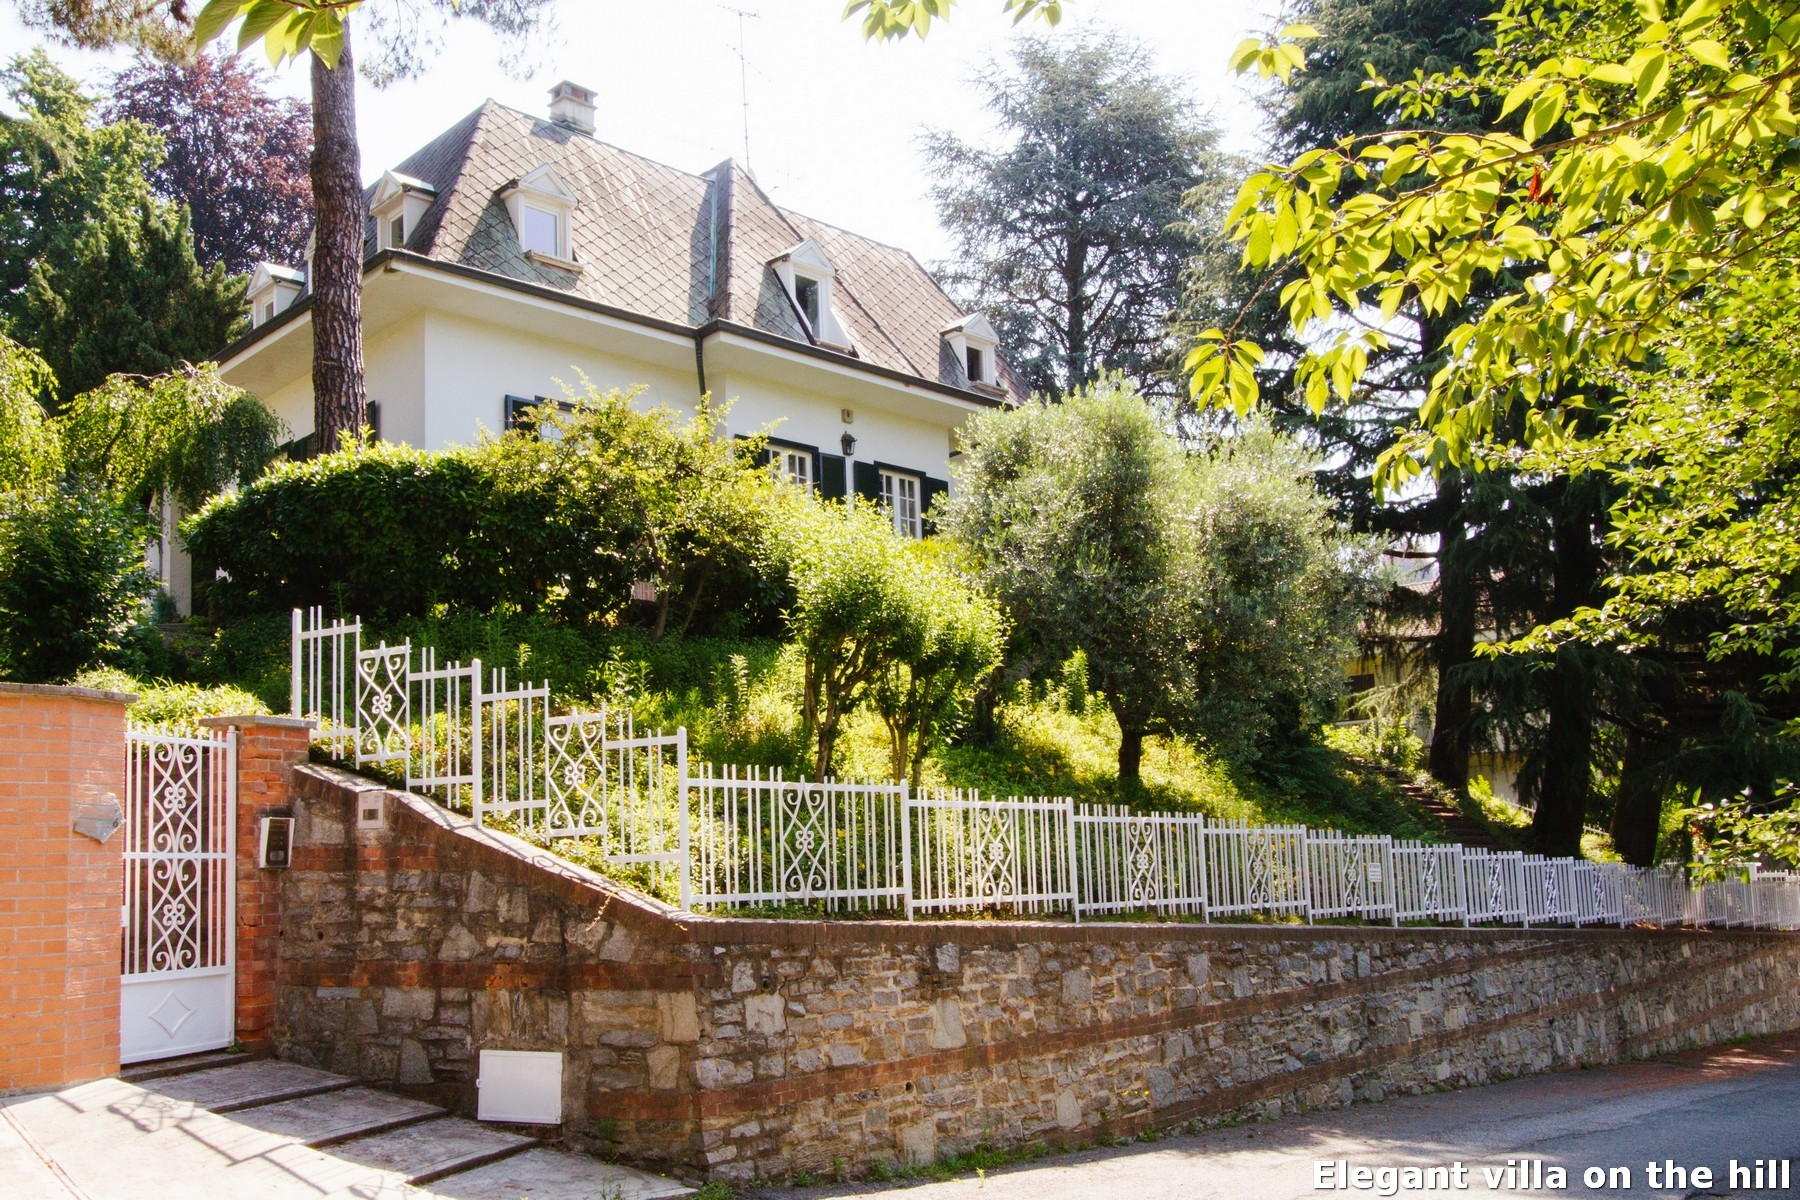 Single Family Home for Sale at Elegant villa on the hill Viale XXV Aprile Torino, 10133 Italy